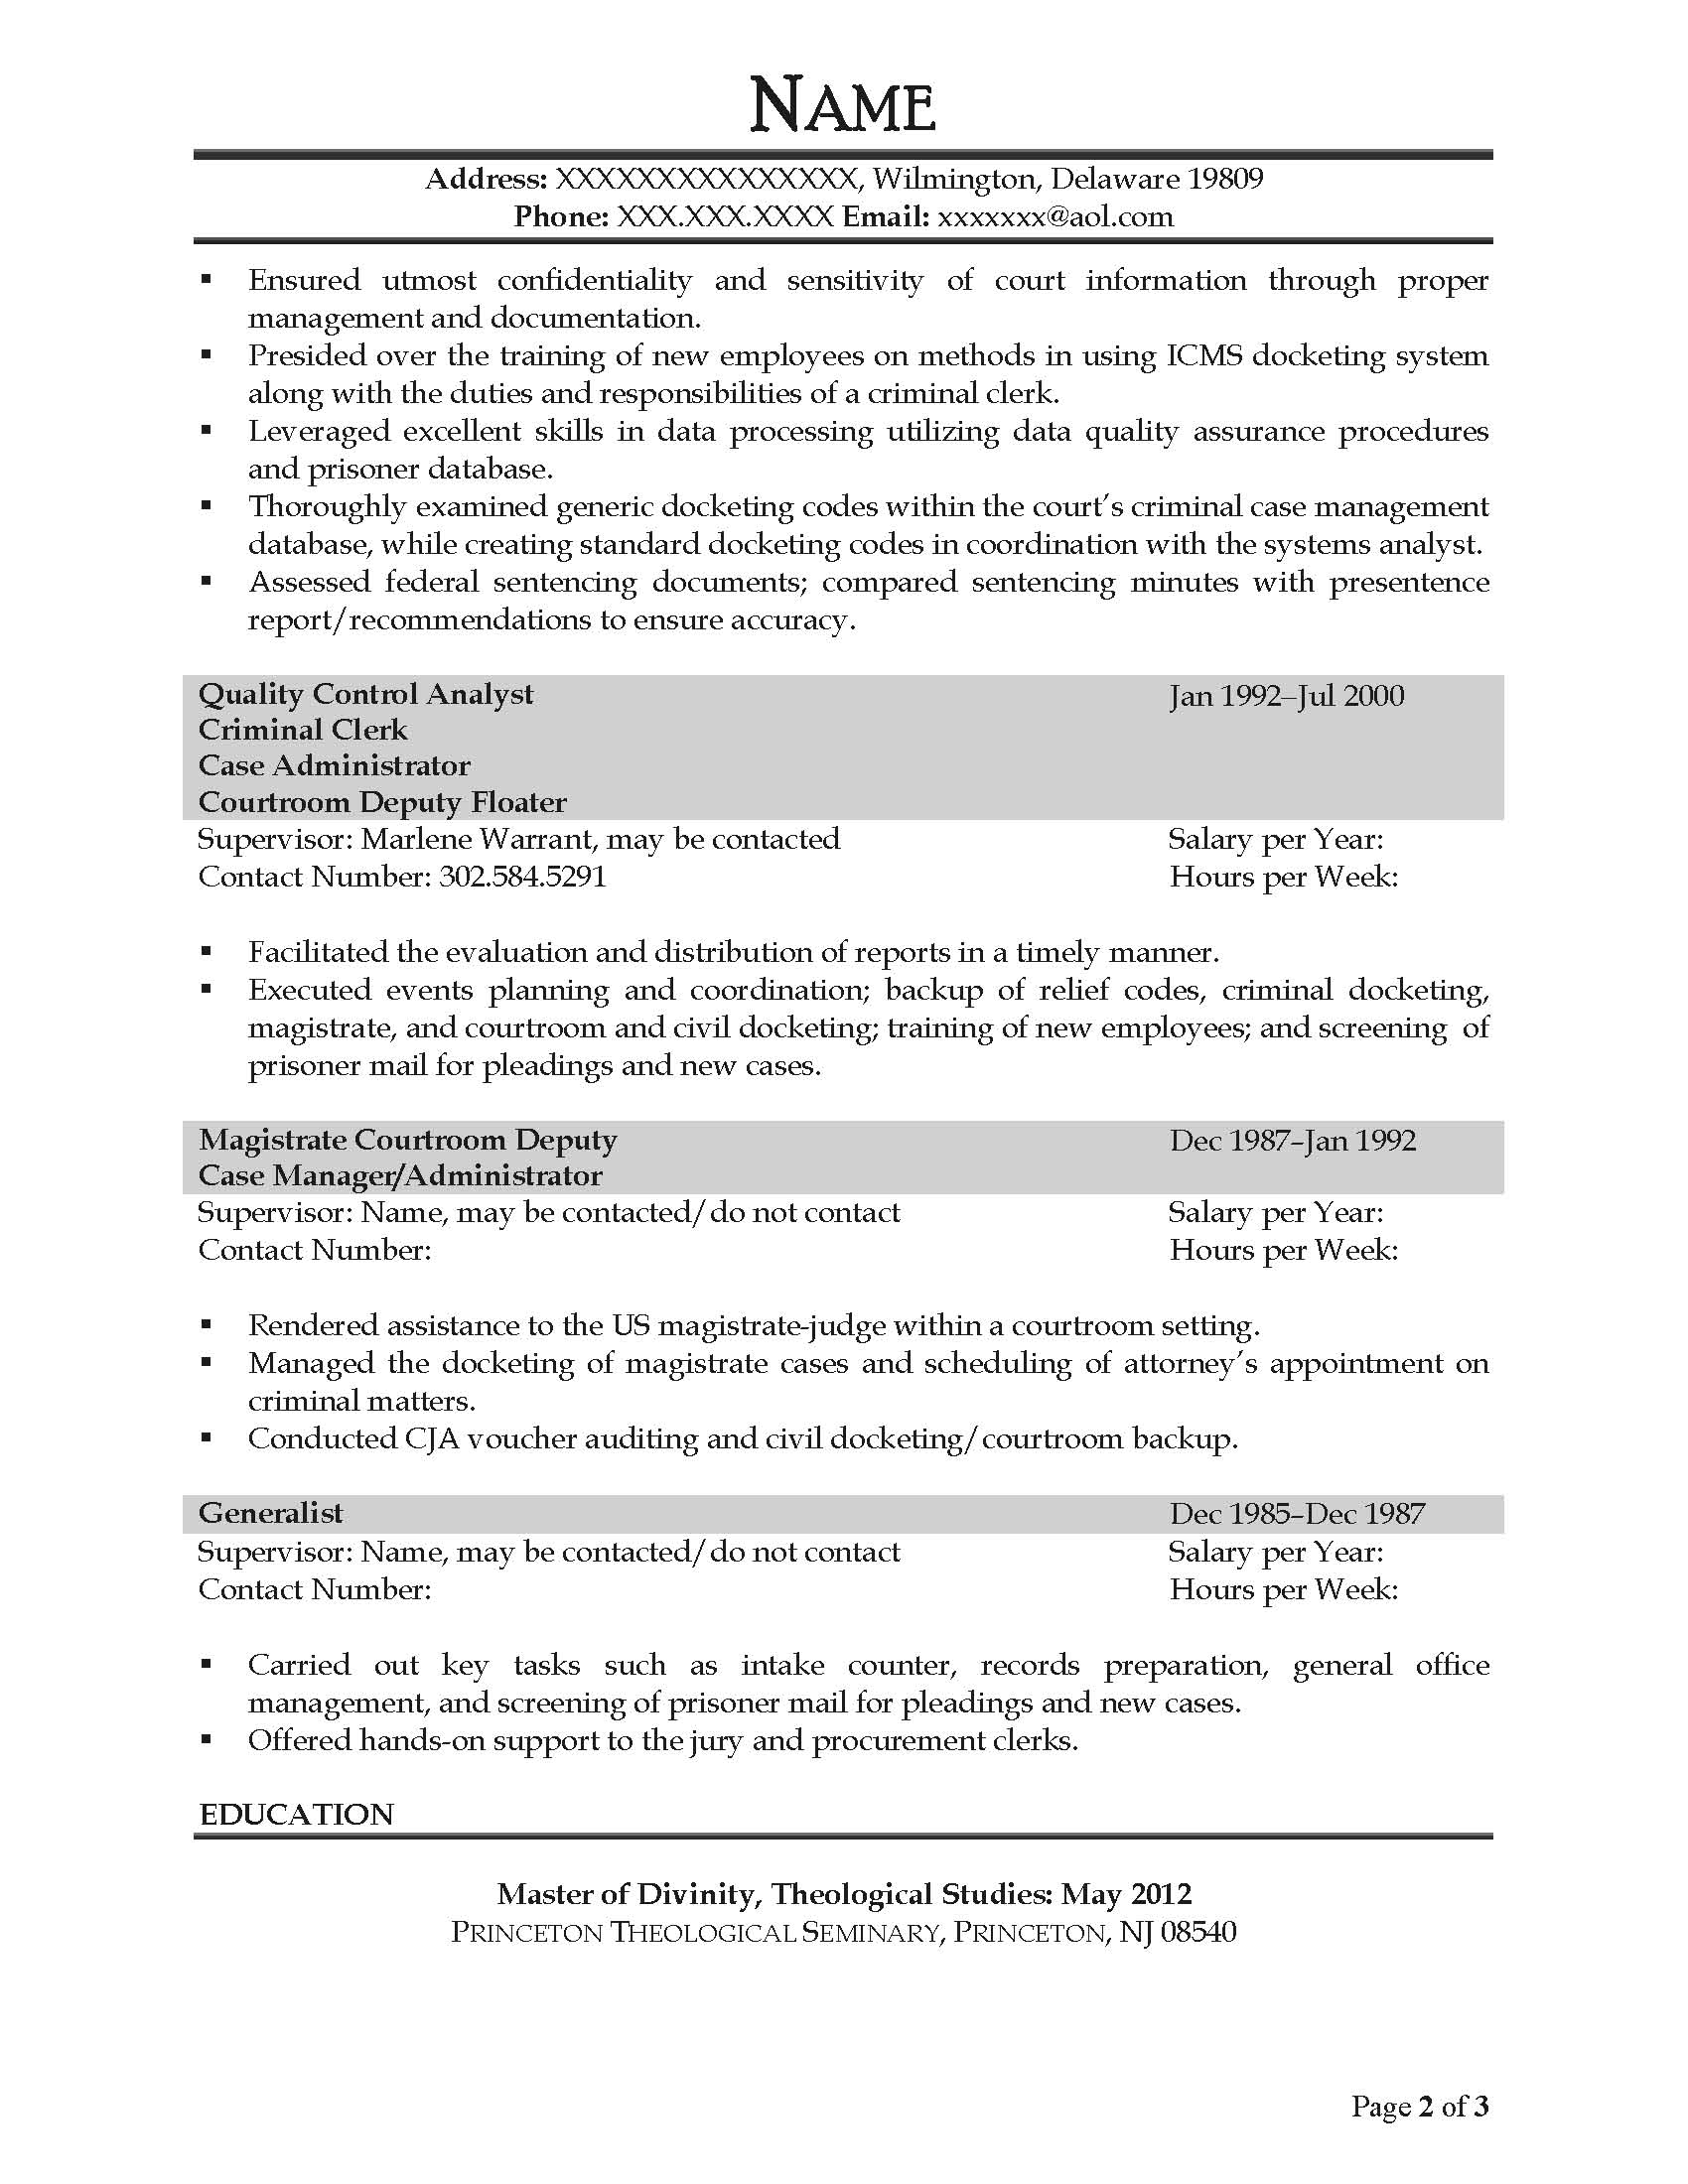 Case Administrator Resume Sample - After-2